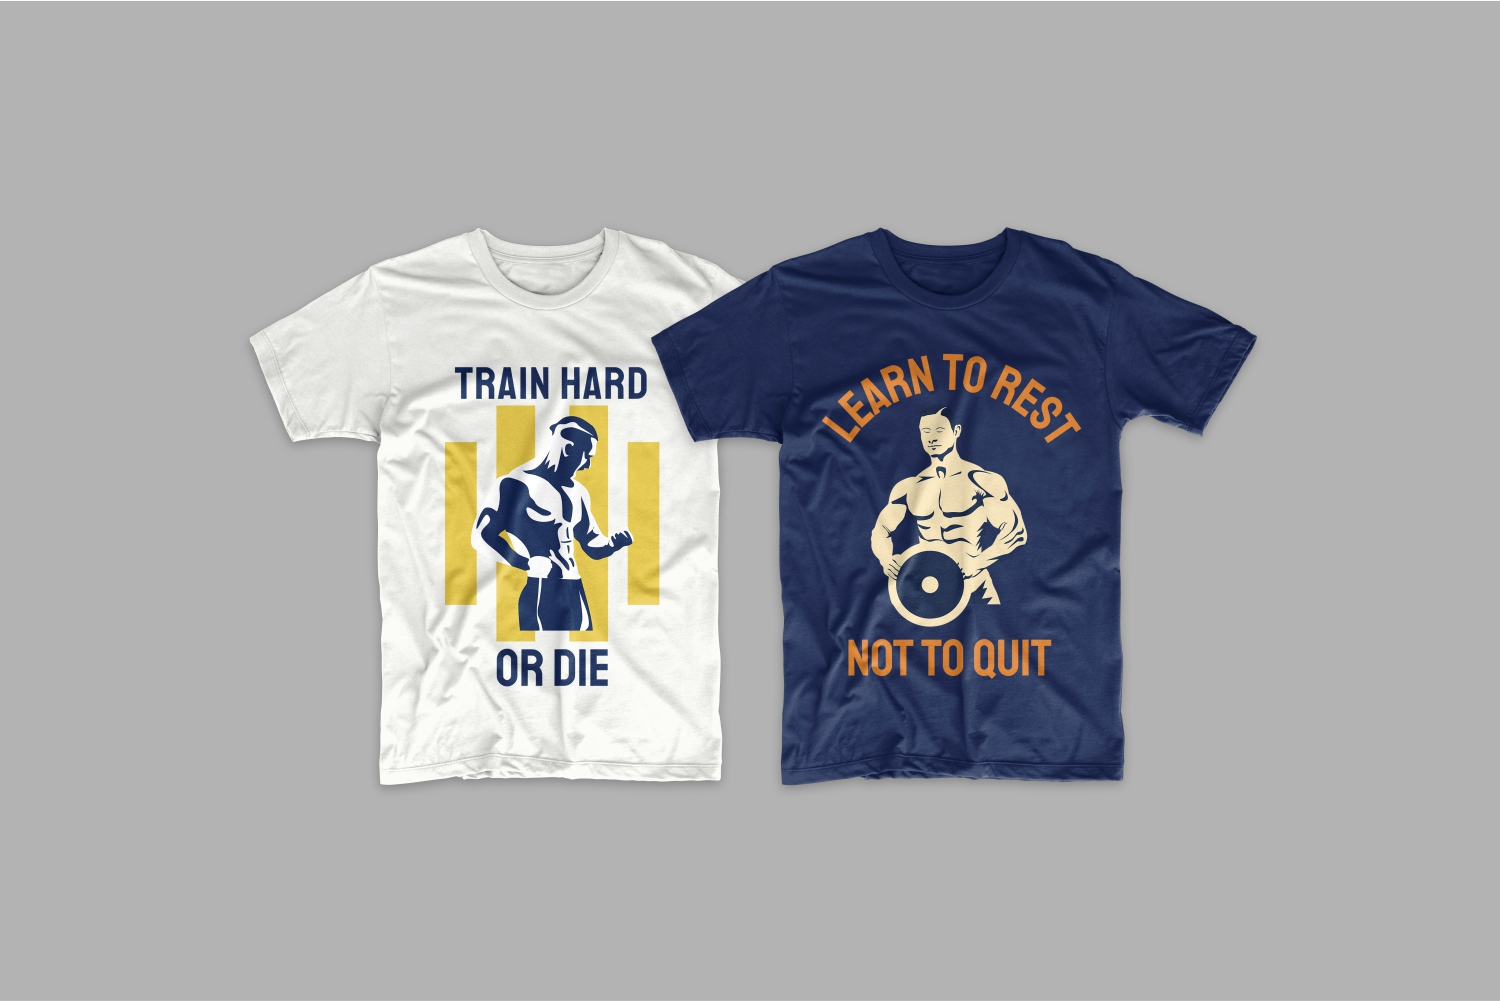 Two T-shirts about training and results.